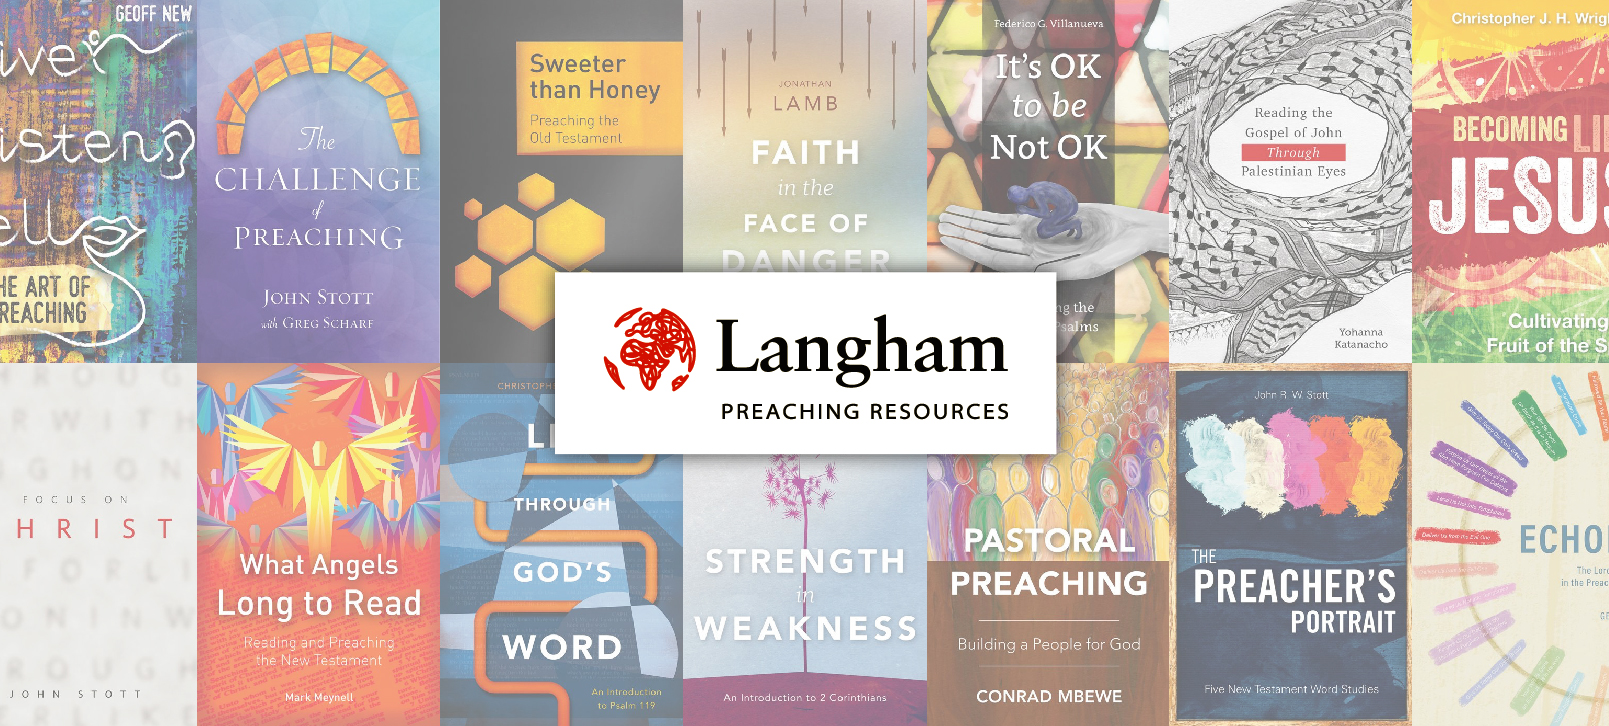 Langham Preaching Resources